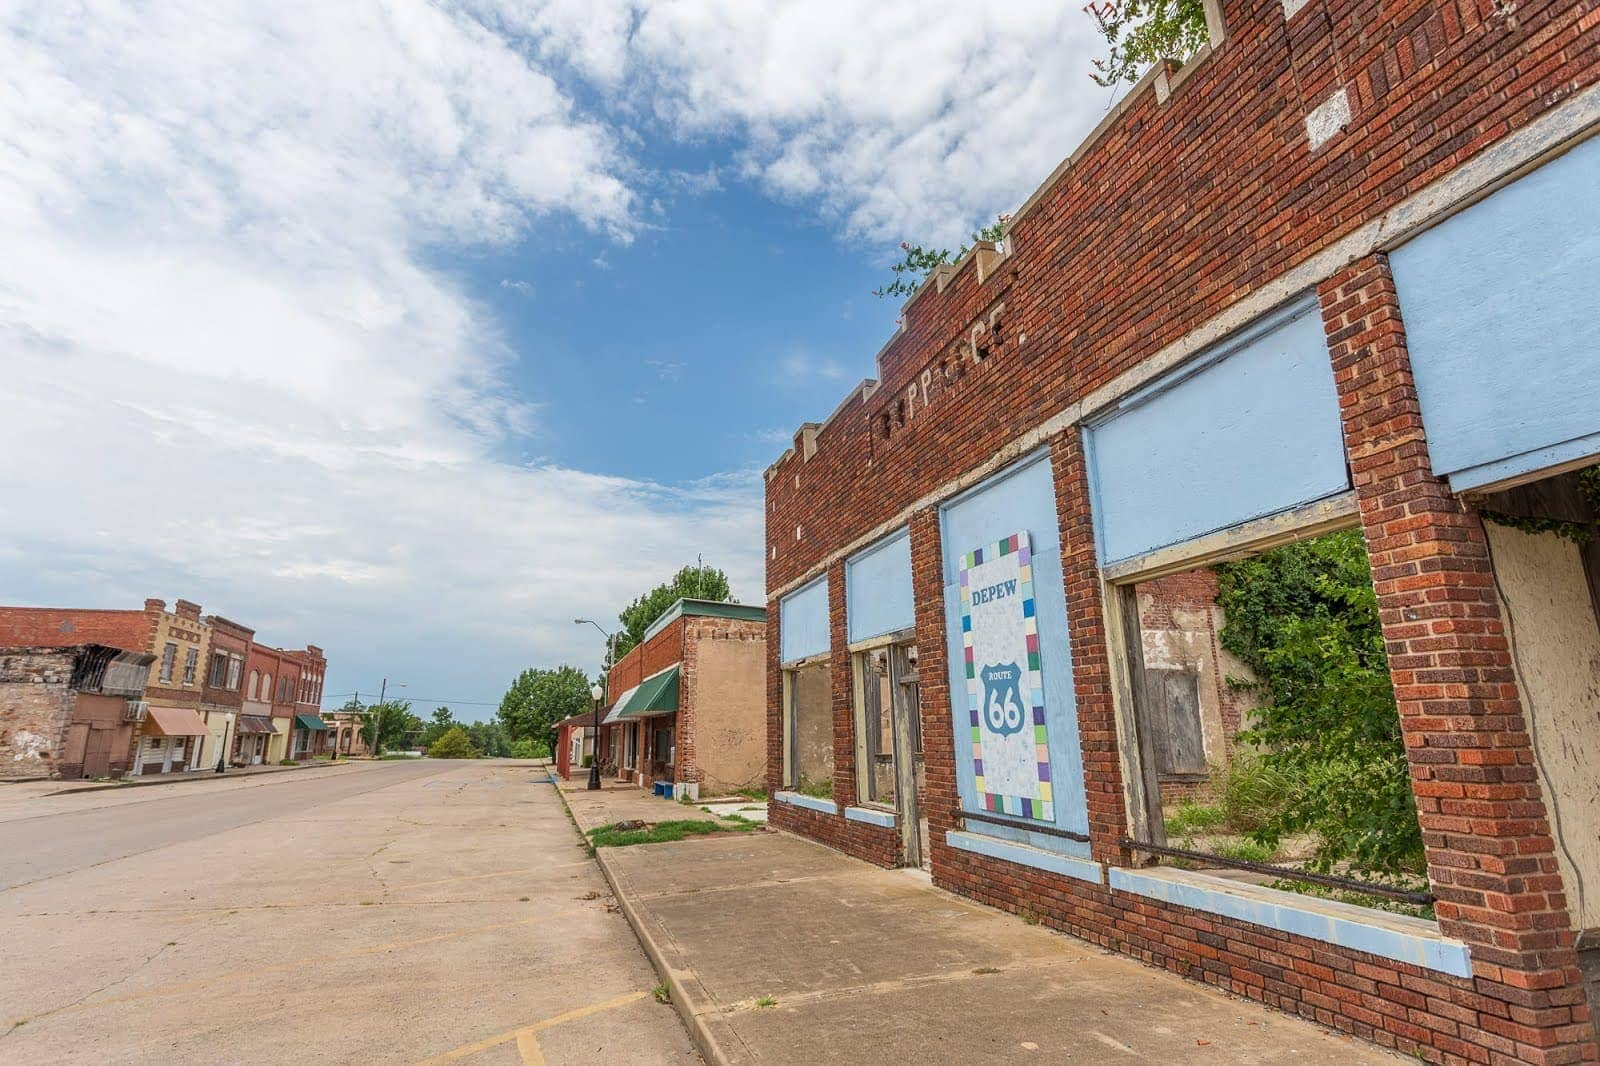 Depew Ghost town Route 66 Oklahoma_by_Laurence Norah-2